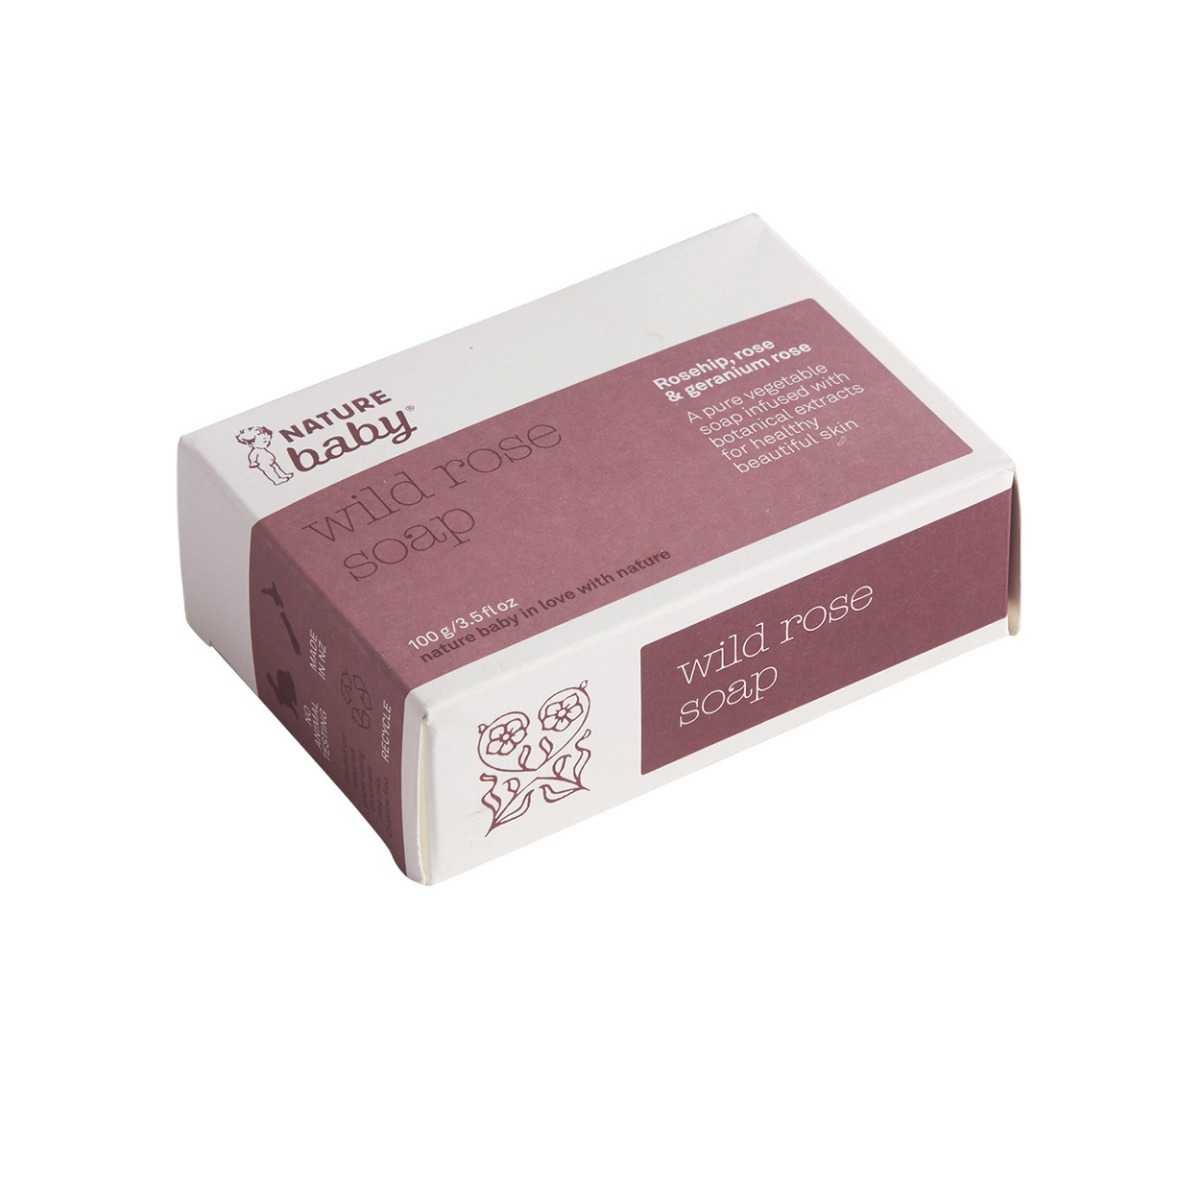 Nature Baby Mums Wild Rose Soap - 100g